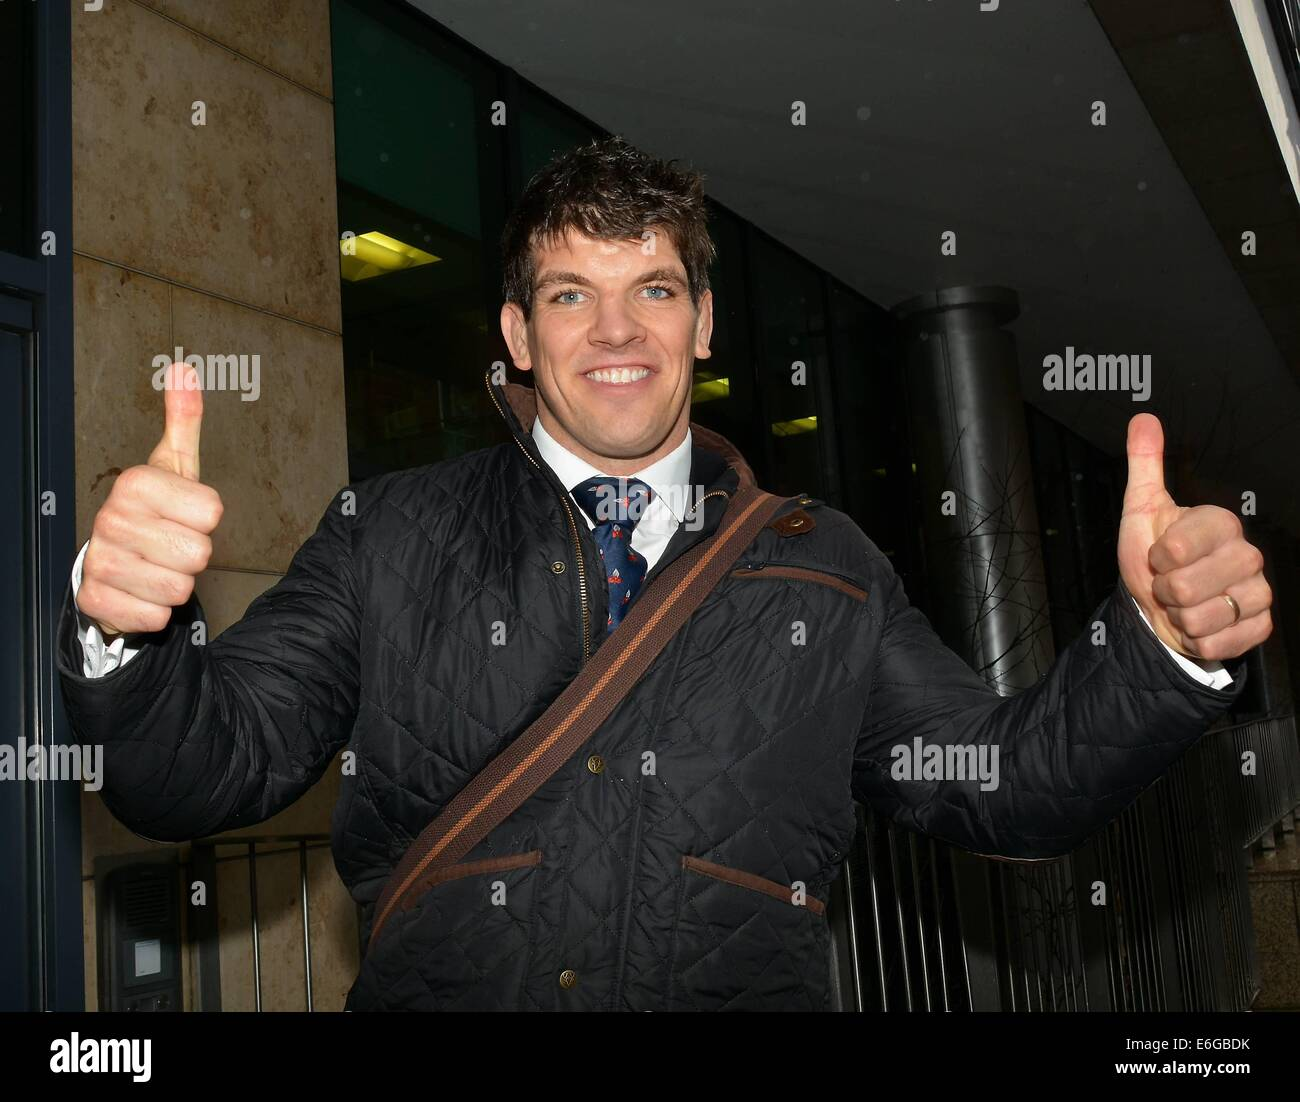 Former miss world rosanna davison irish rugby player donncha former miss world rosanna davison irish rugby player donncha ocallaghan at today fm for the ray darcy show featuring donncha ocallaghan where thecheapjerseys Images